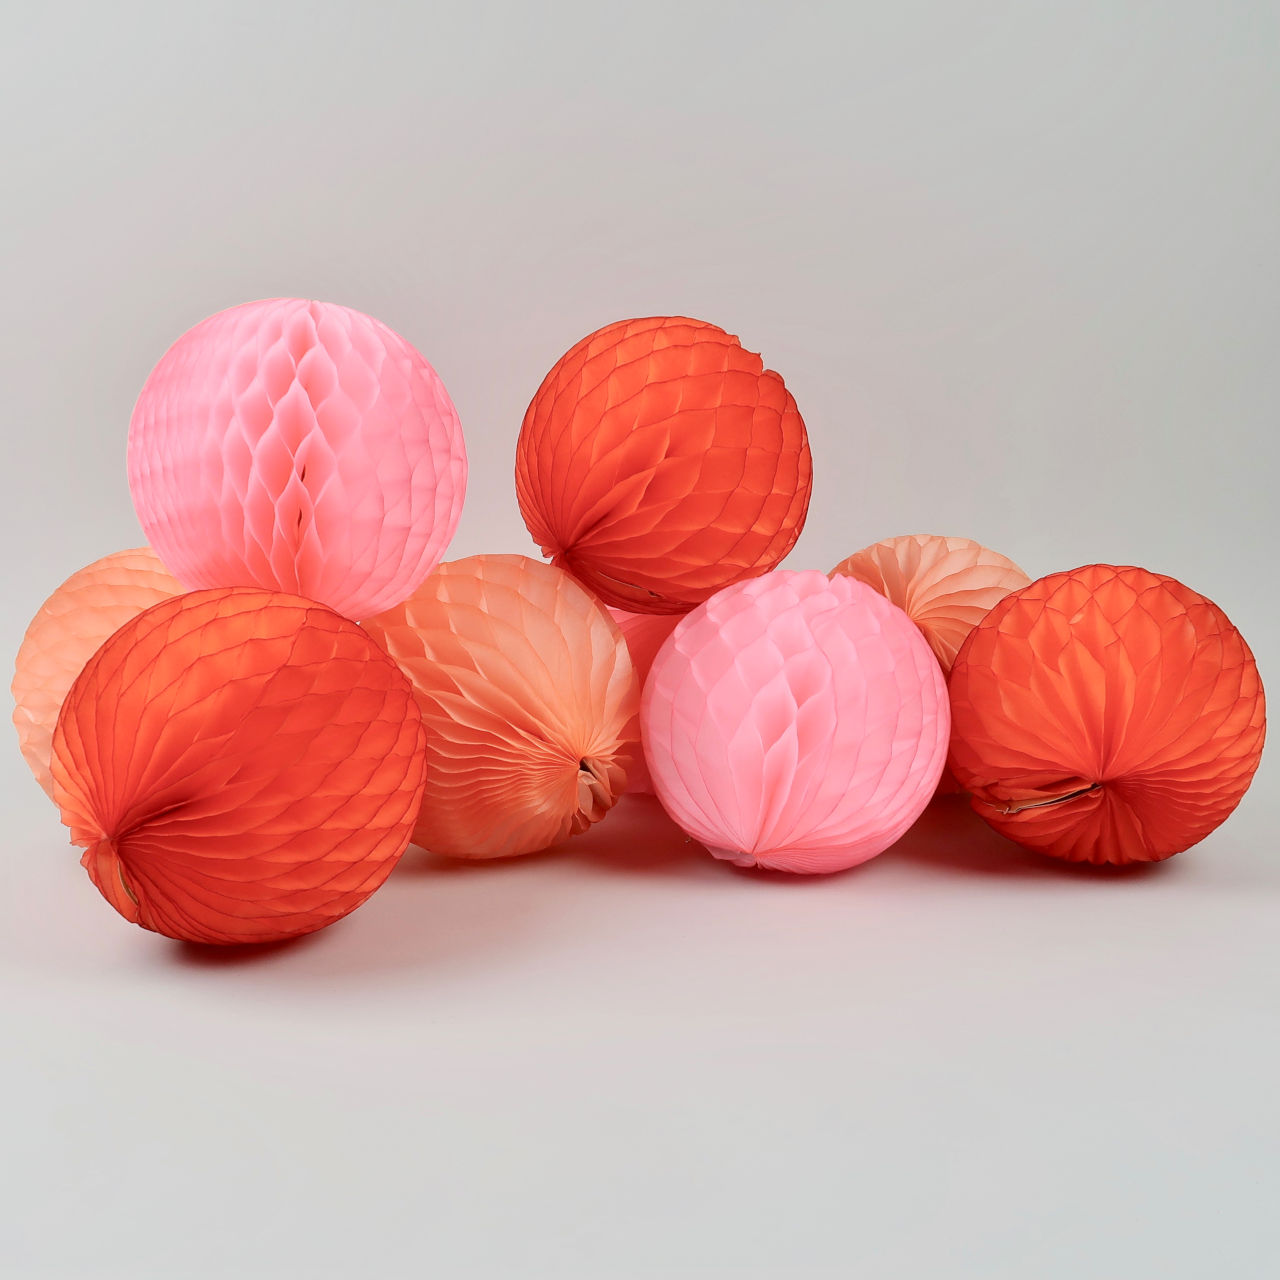 Honeycomb Paper Ball - 15cm Diameter - Pack of 3